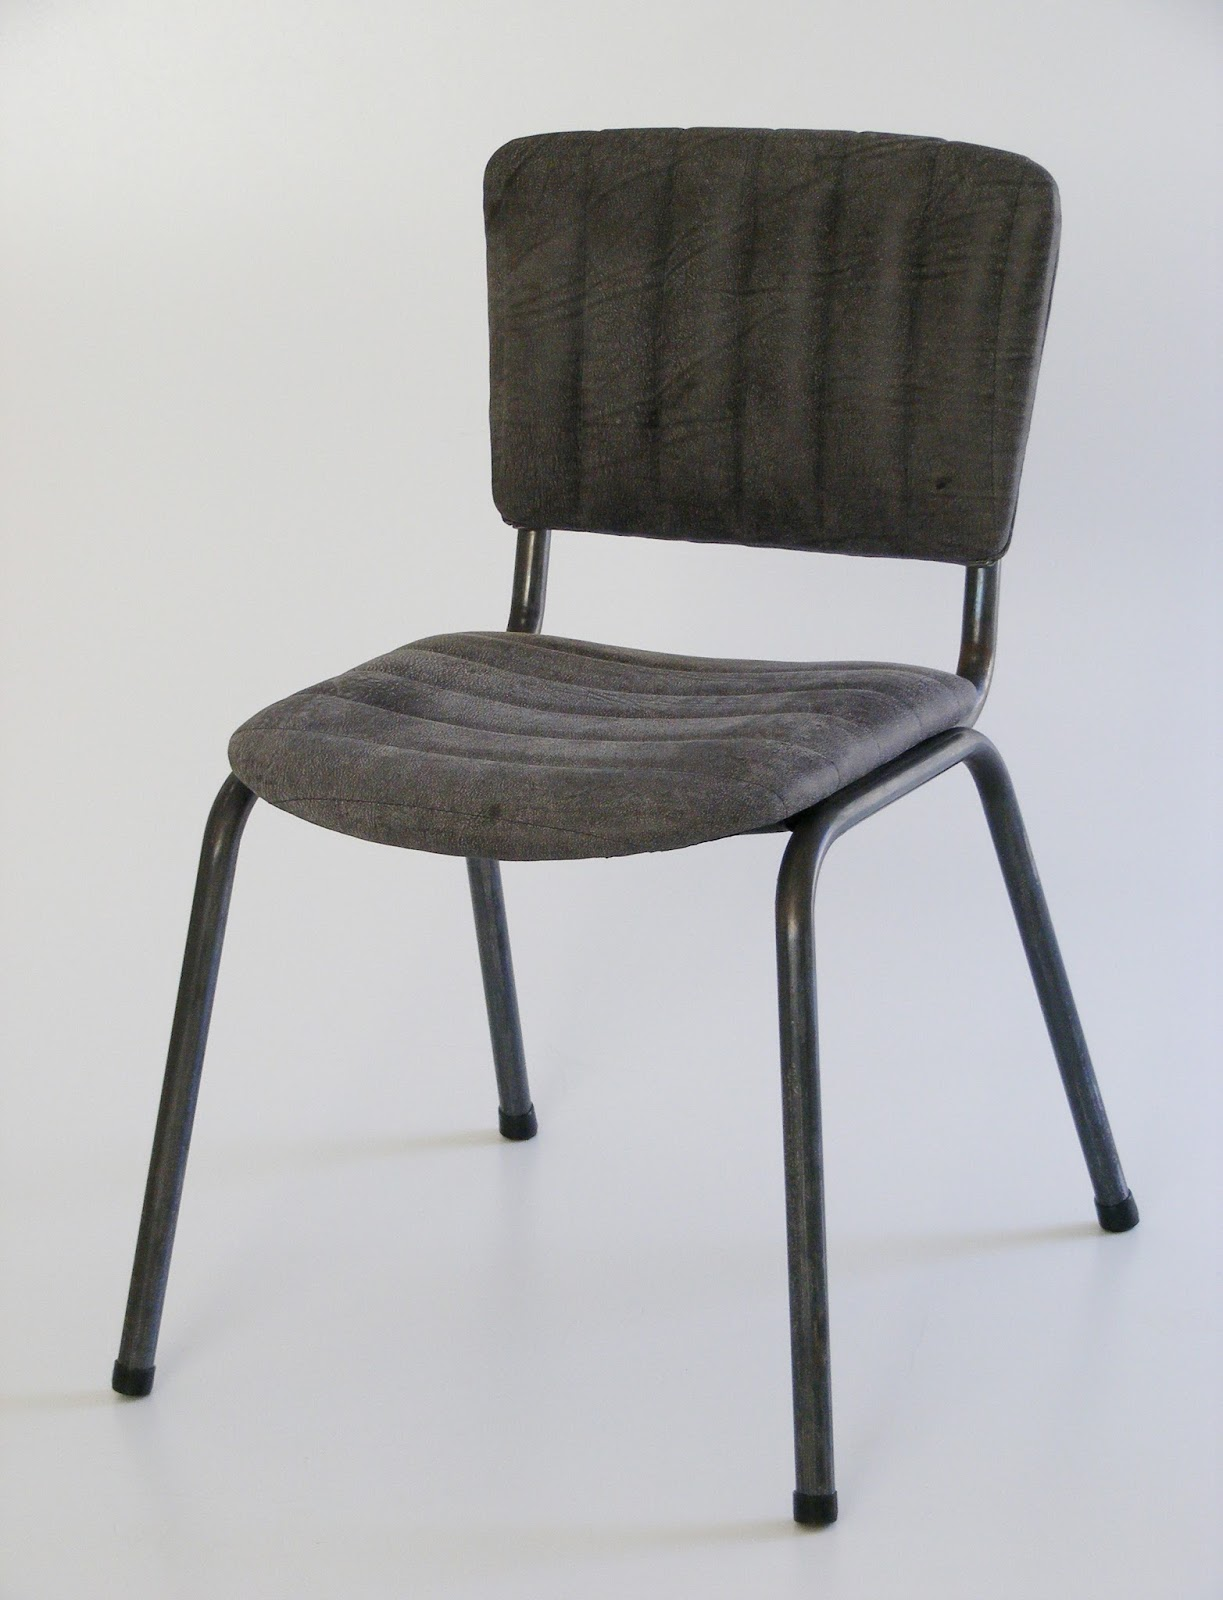 Based On The Old School Chair Design, These Miyabi Chairs Now Come Covered  In Padded Leather. Super Comfy And Very Handsome!